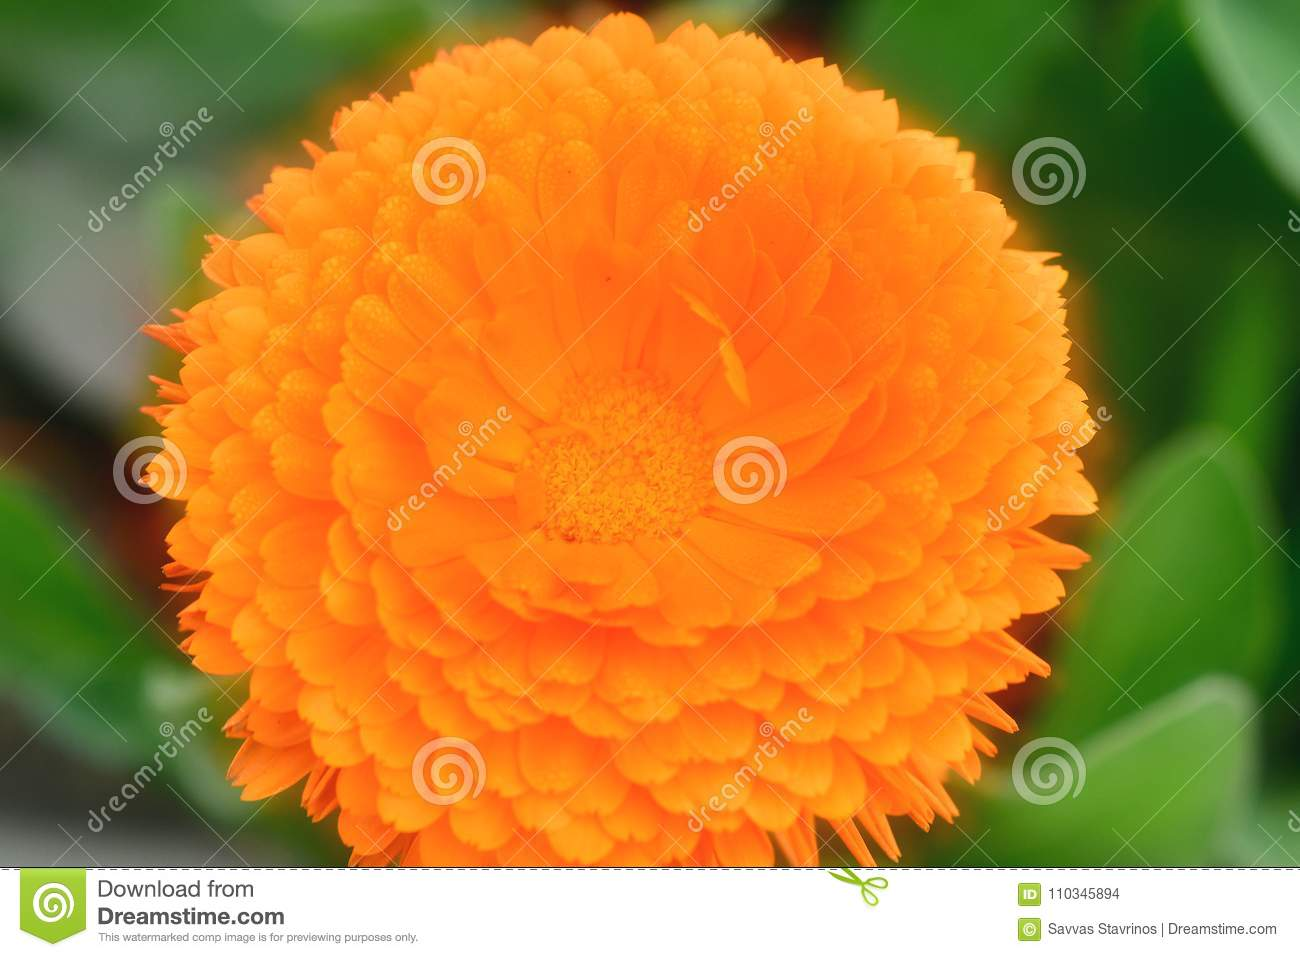 Plants With Daisy Like Flowers In Orange Color Yellow And Other